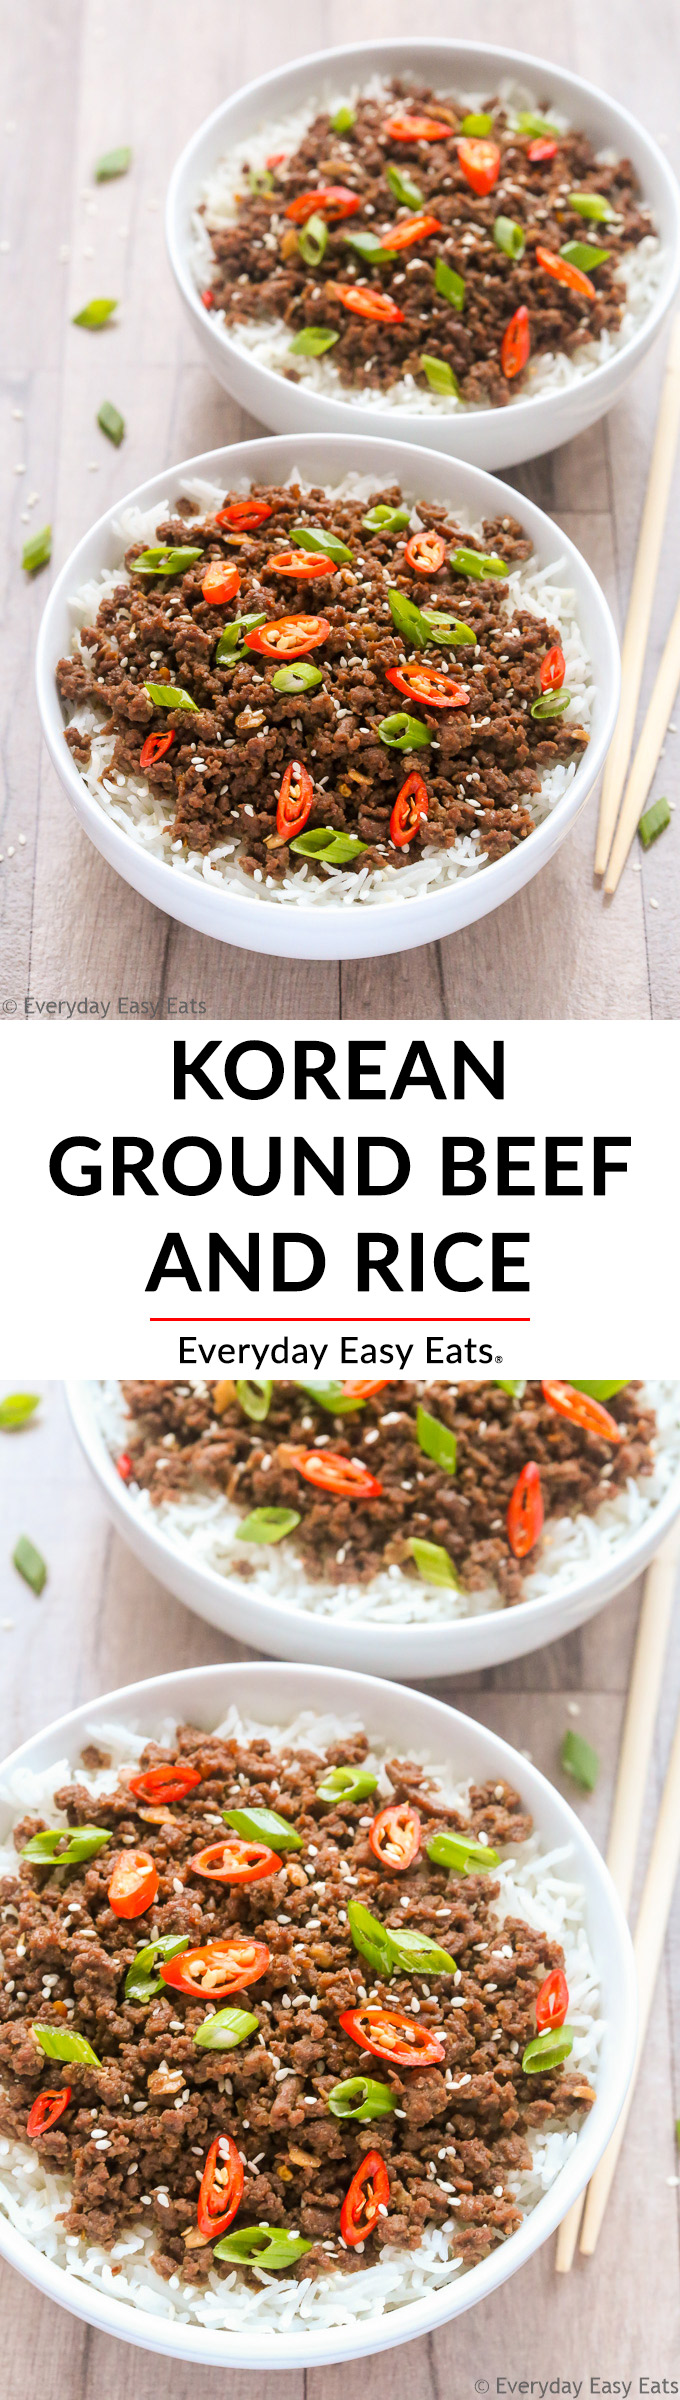 Easy Korean Ground Beef and Rice | Recipe at EverydayEasyEats.com